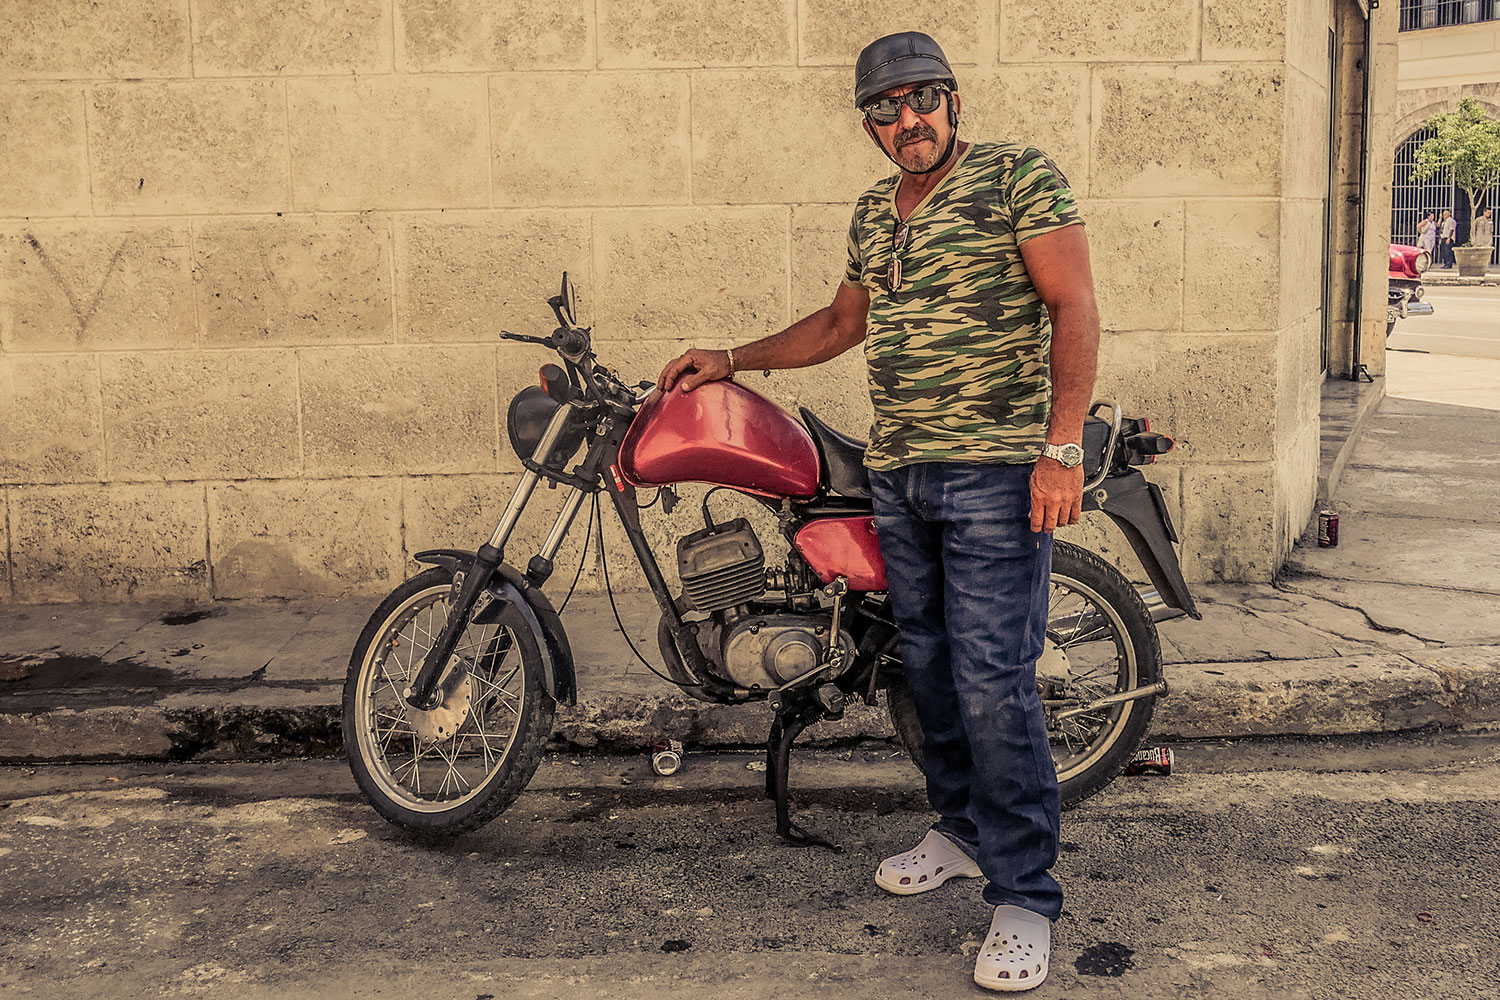 Cuban guy in Resurgence Gears, Pekev® Lite, Dark Blue motorcycle jeans Australia - Picture by Dean Saffron 3